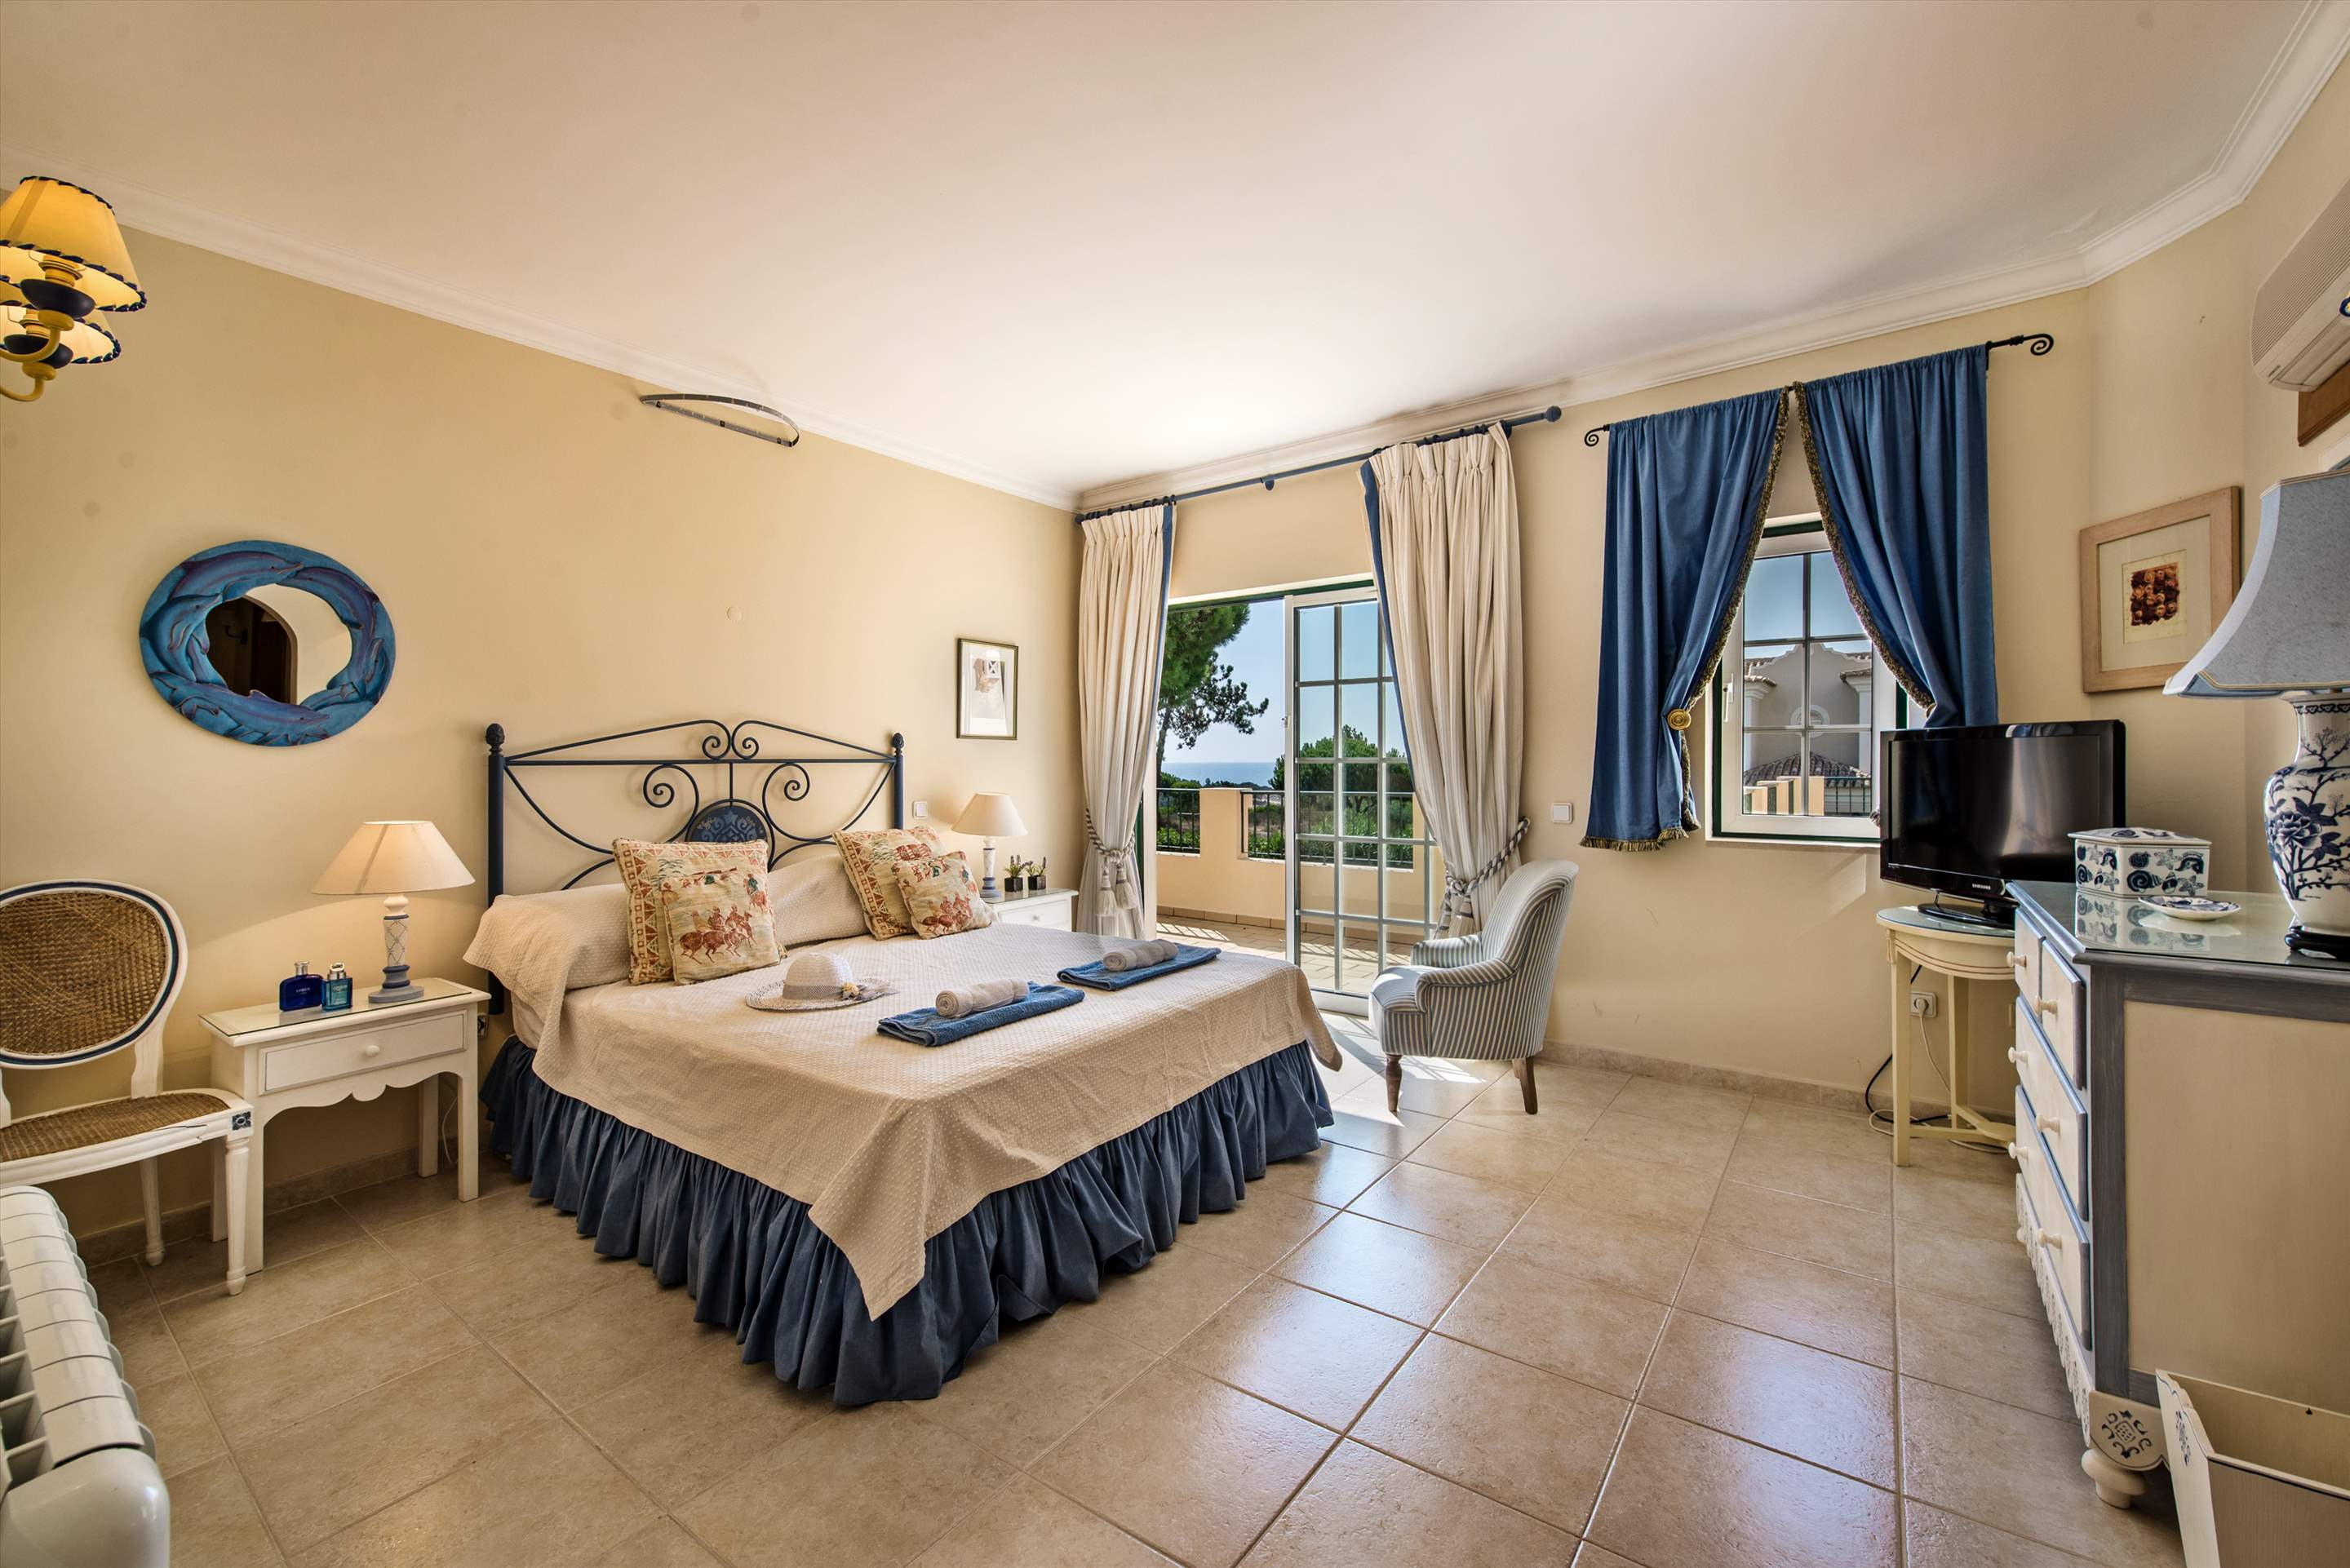 Casa da Encosta, 4 bedroom villa in Vale do Lobo, Algarve Photo #14